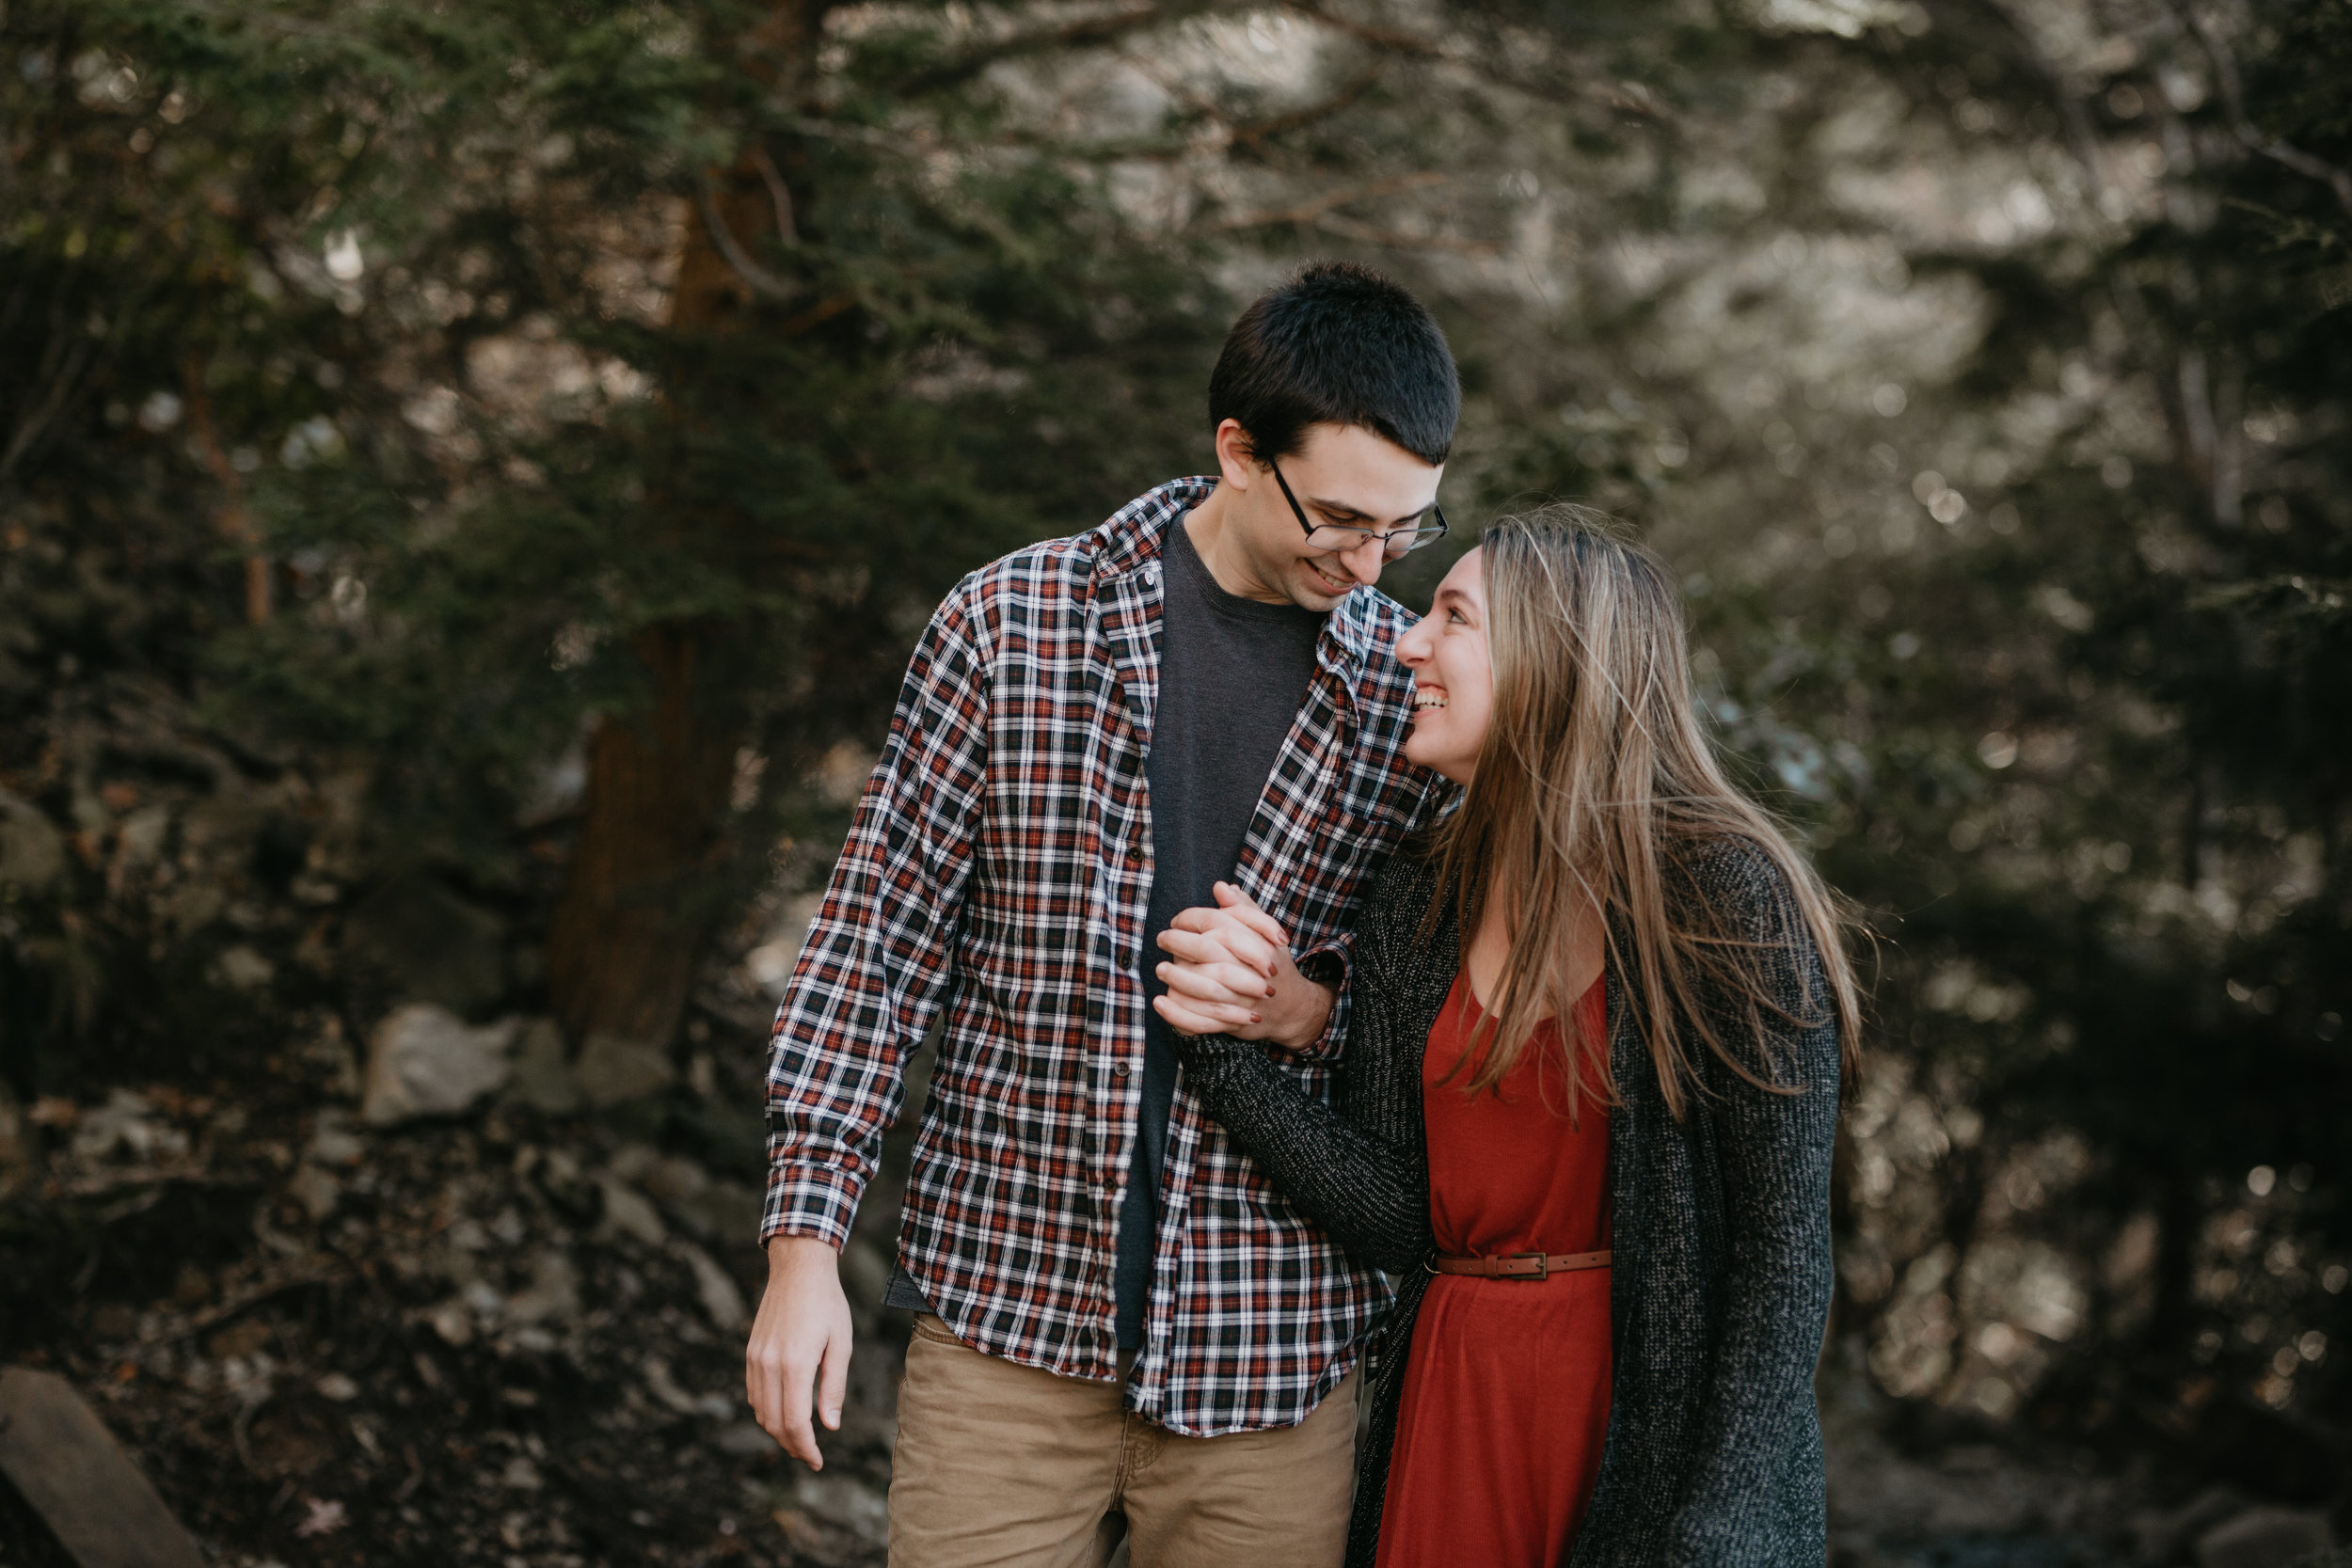 nicole-daacke-photography-shenandoah-national-park-adventure-engagement-session-with-fall-foliage-shenandoah-elopement-photographer-engagement-photos-in-virginia-charlottesville-national-park-adventure-elopement-photographer-3579.jpg